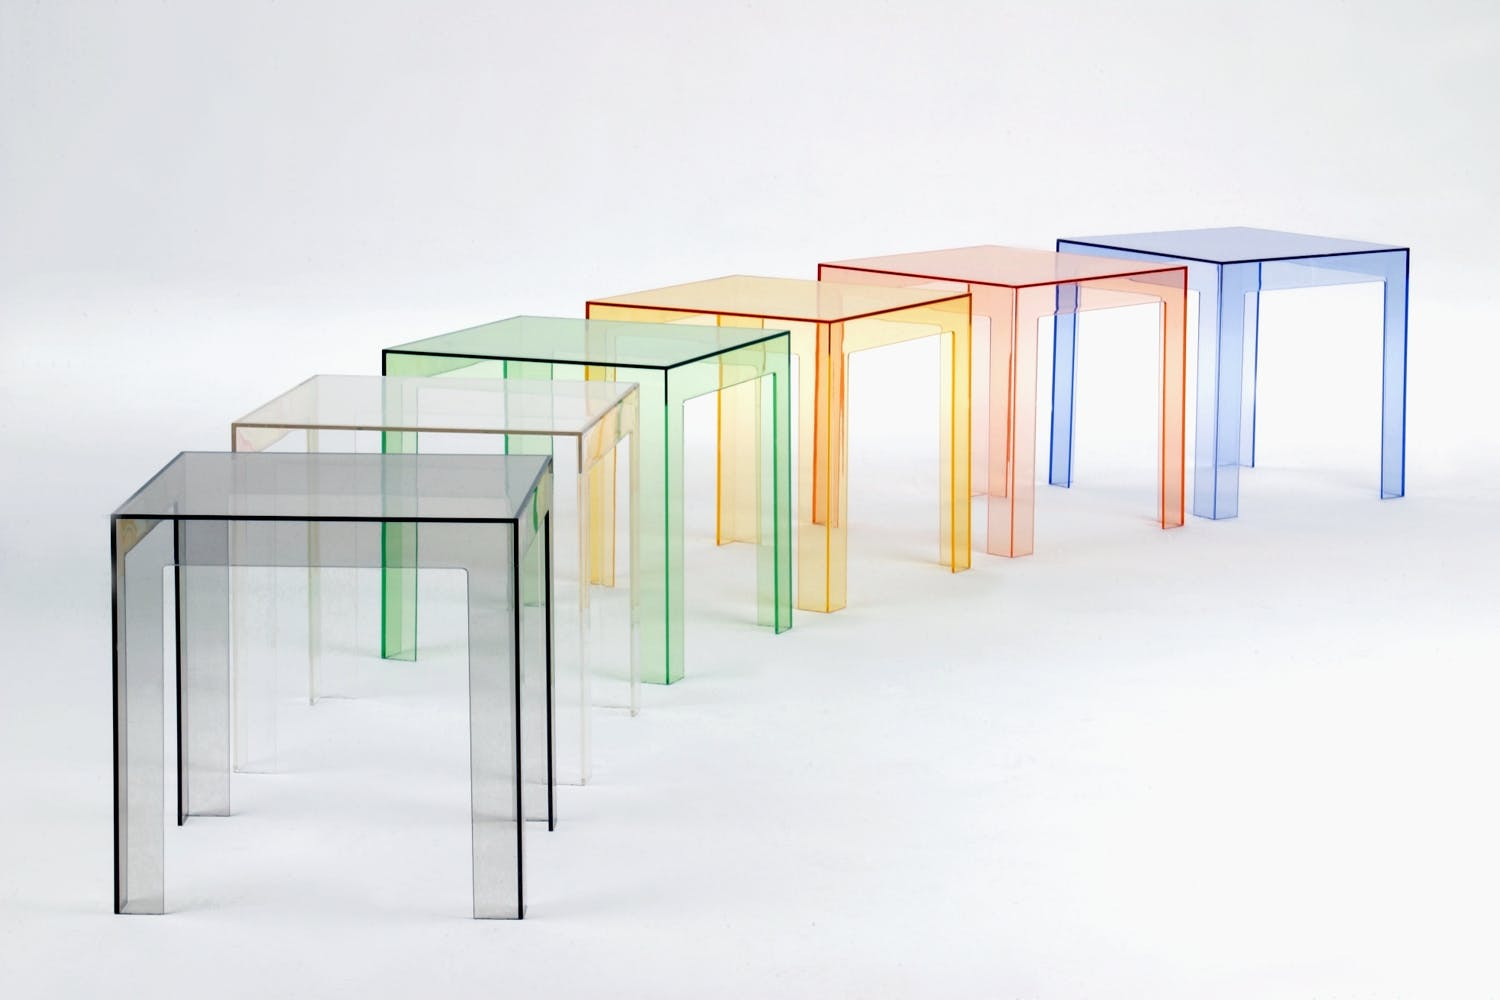 jolly low table by paolo rizzatto for kartell  space furniture - share